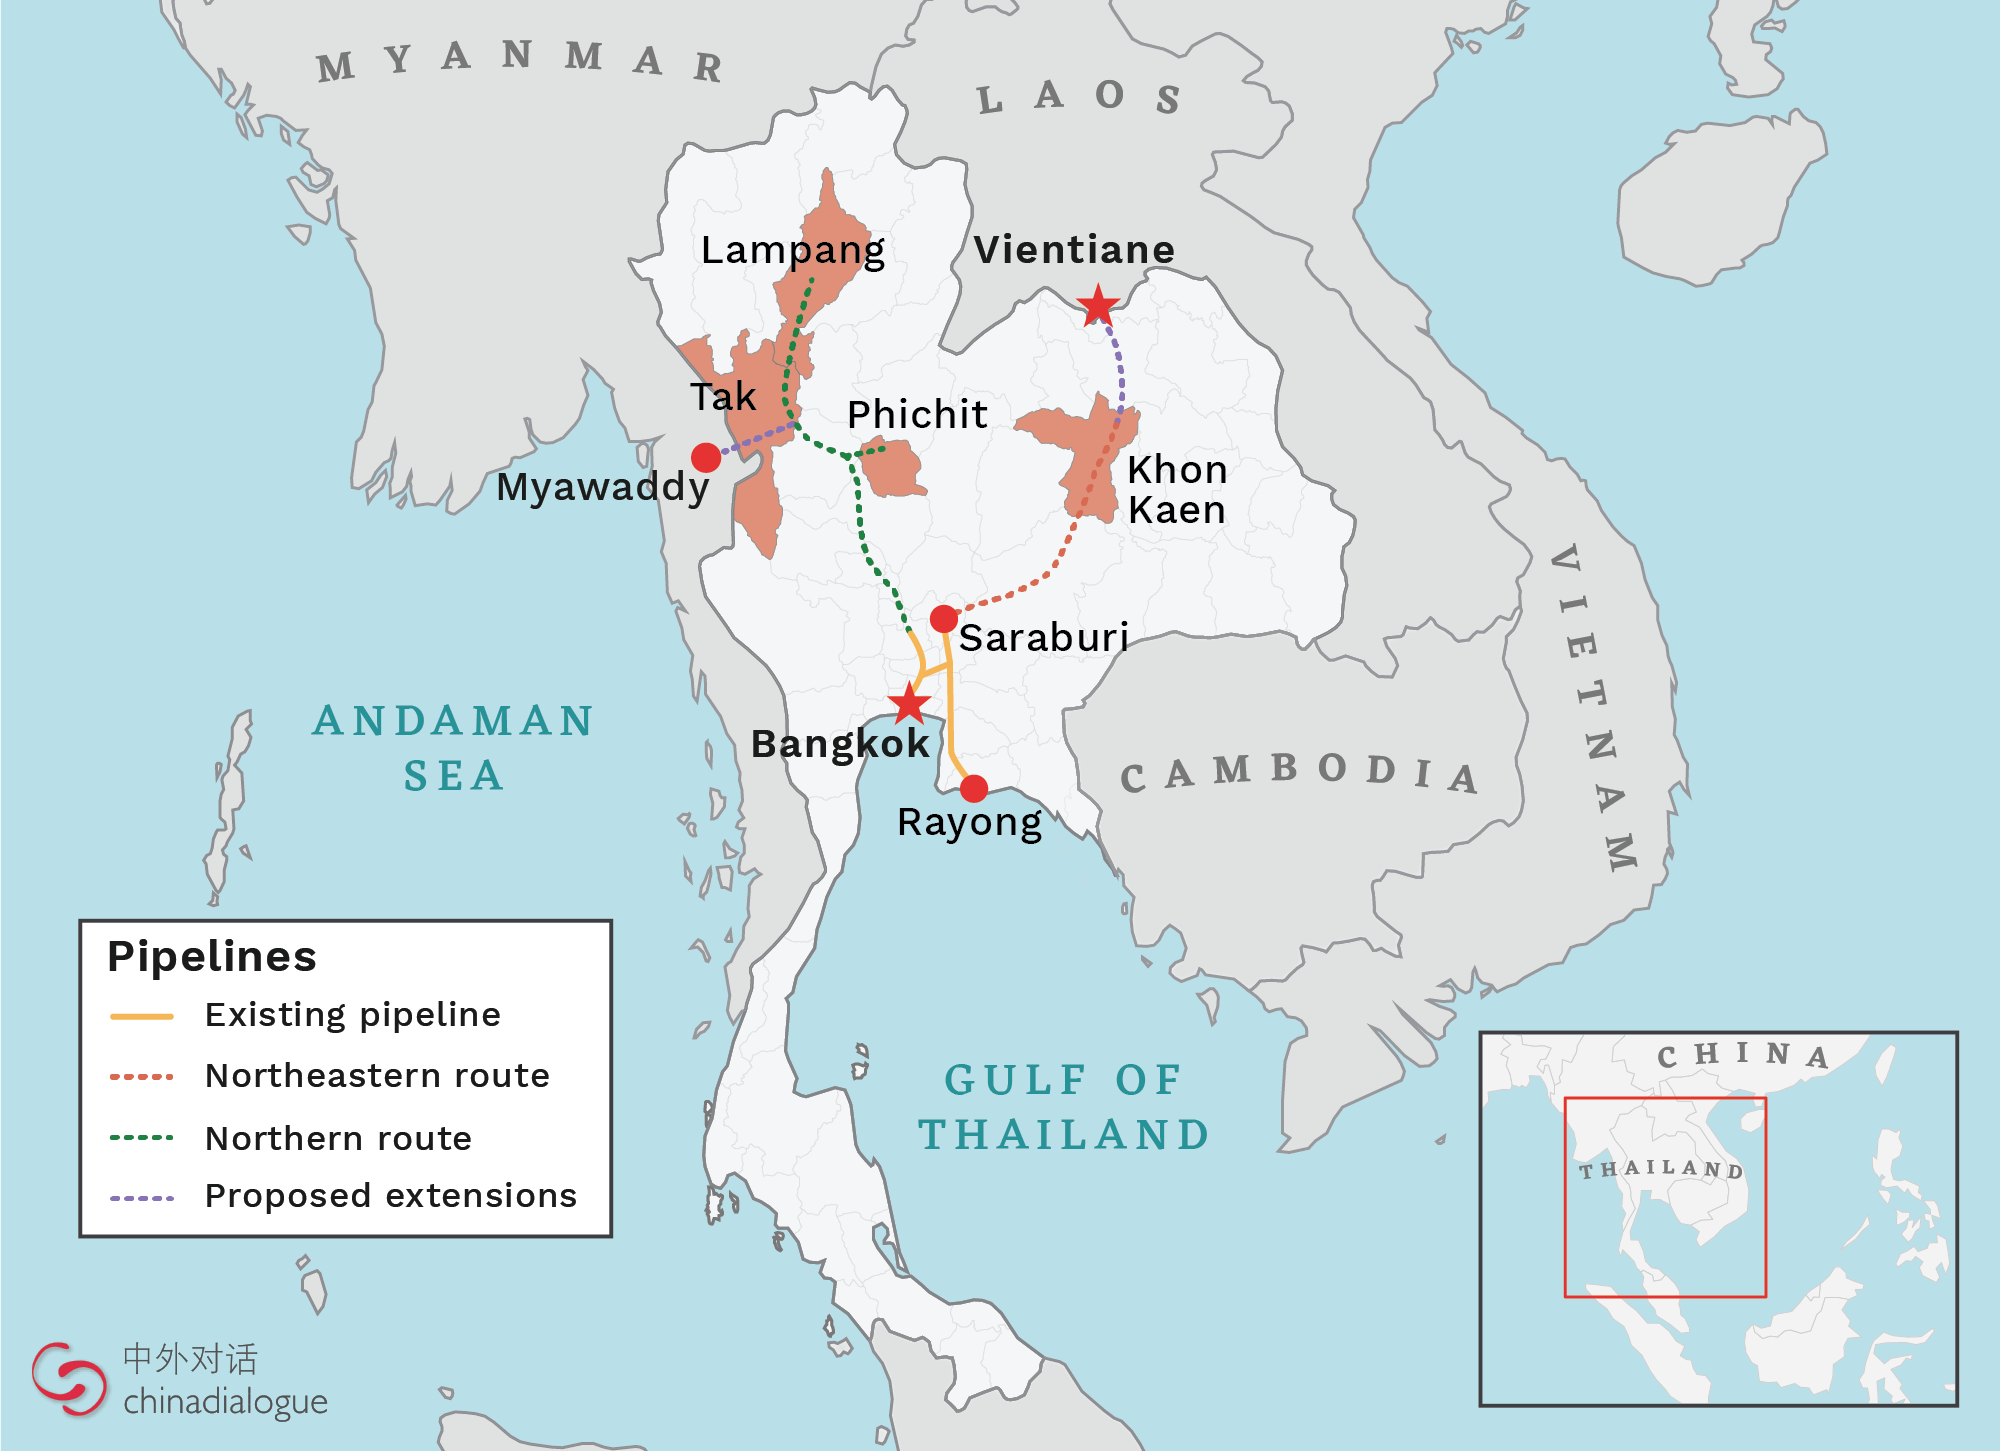 Thailand northern and northeastern oil pipeline extensions